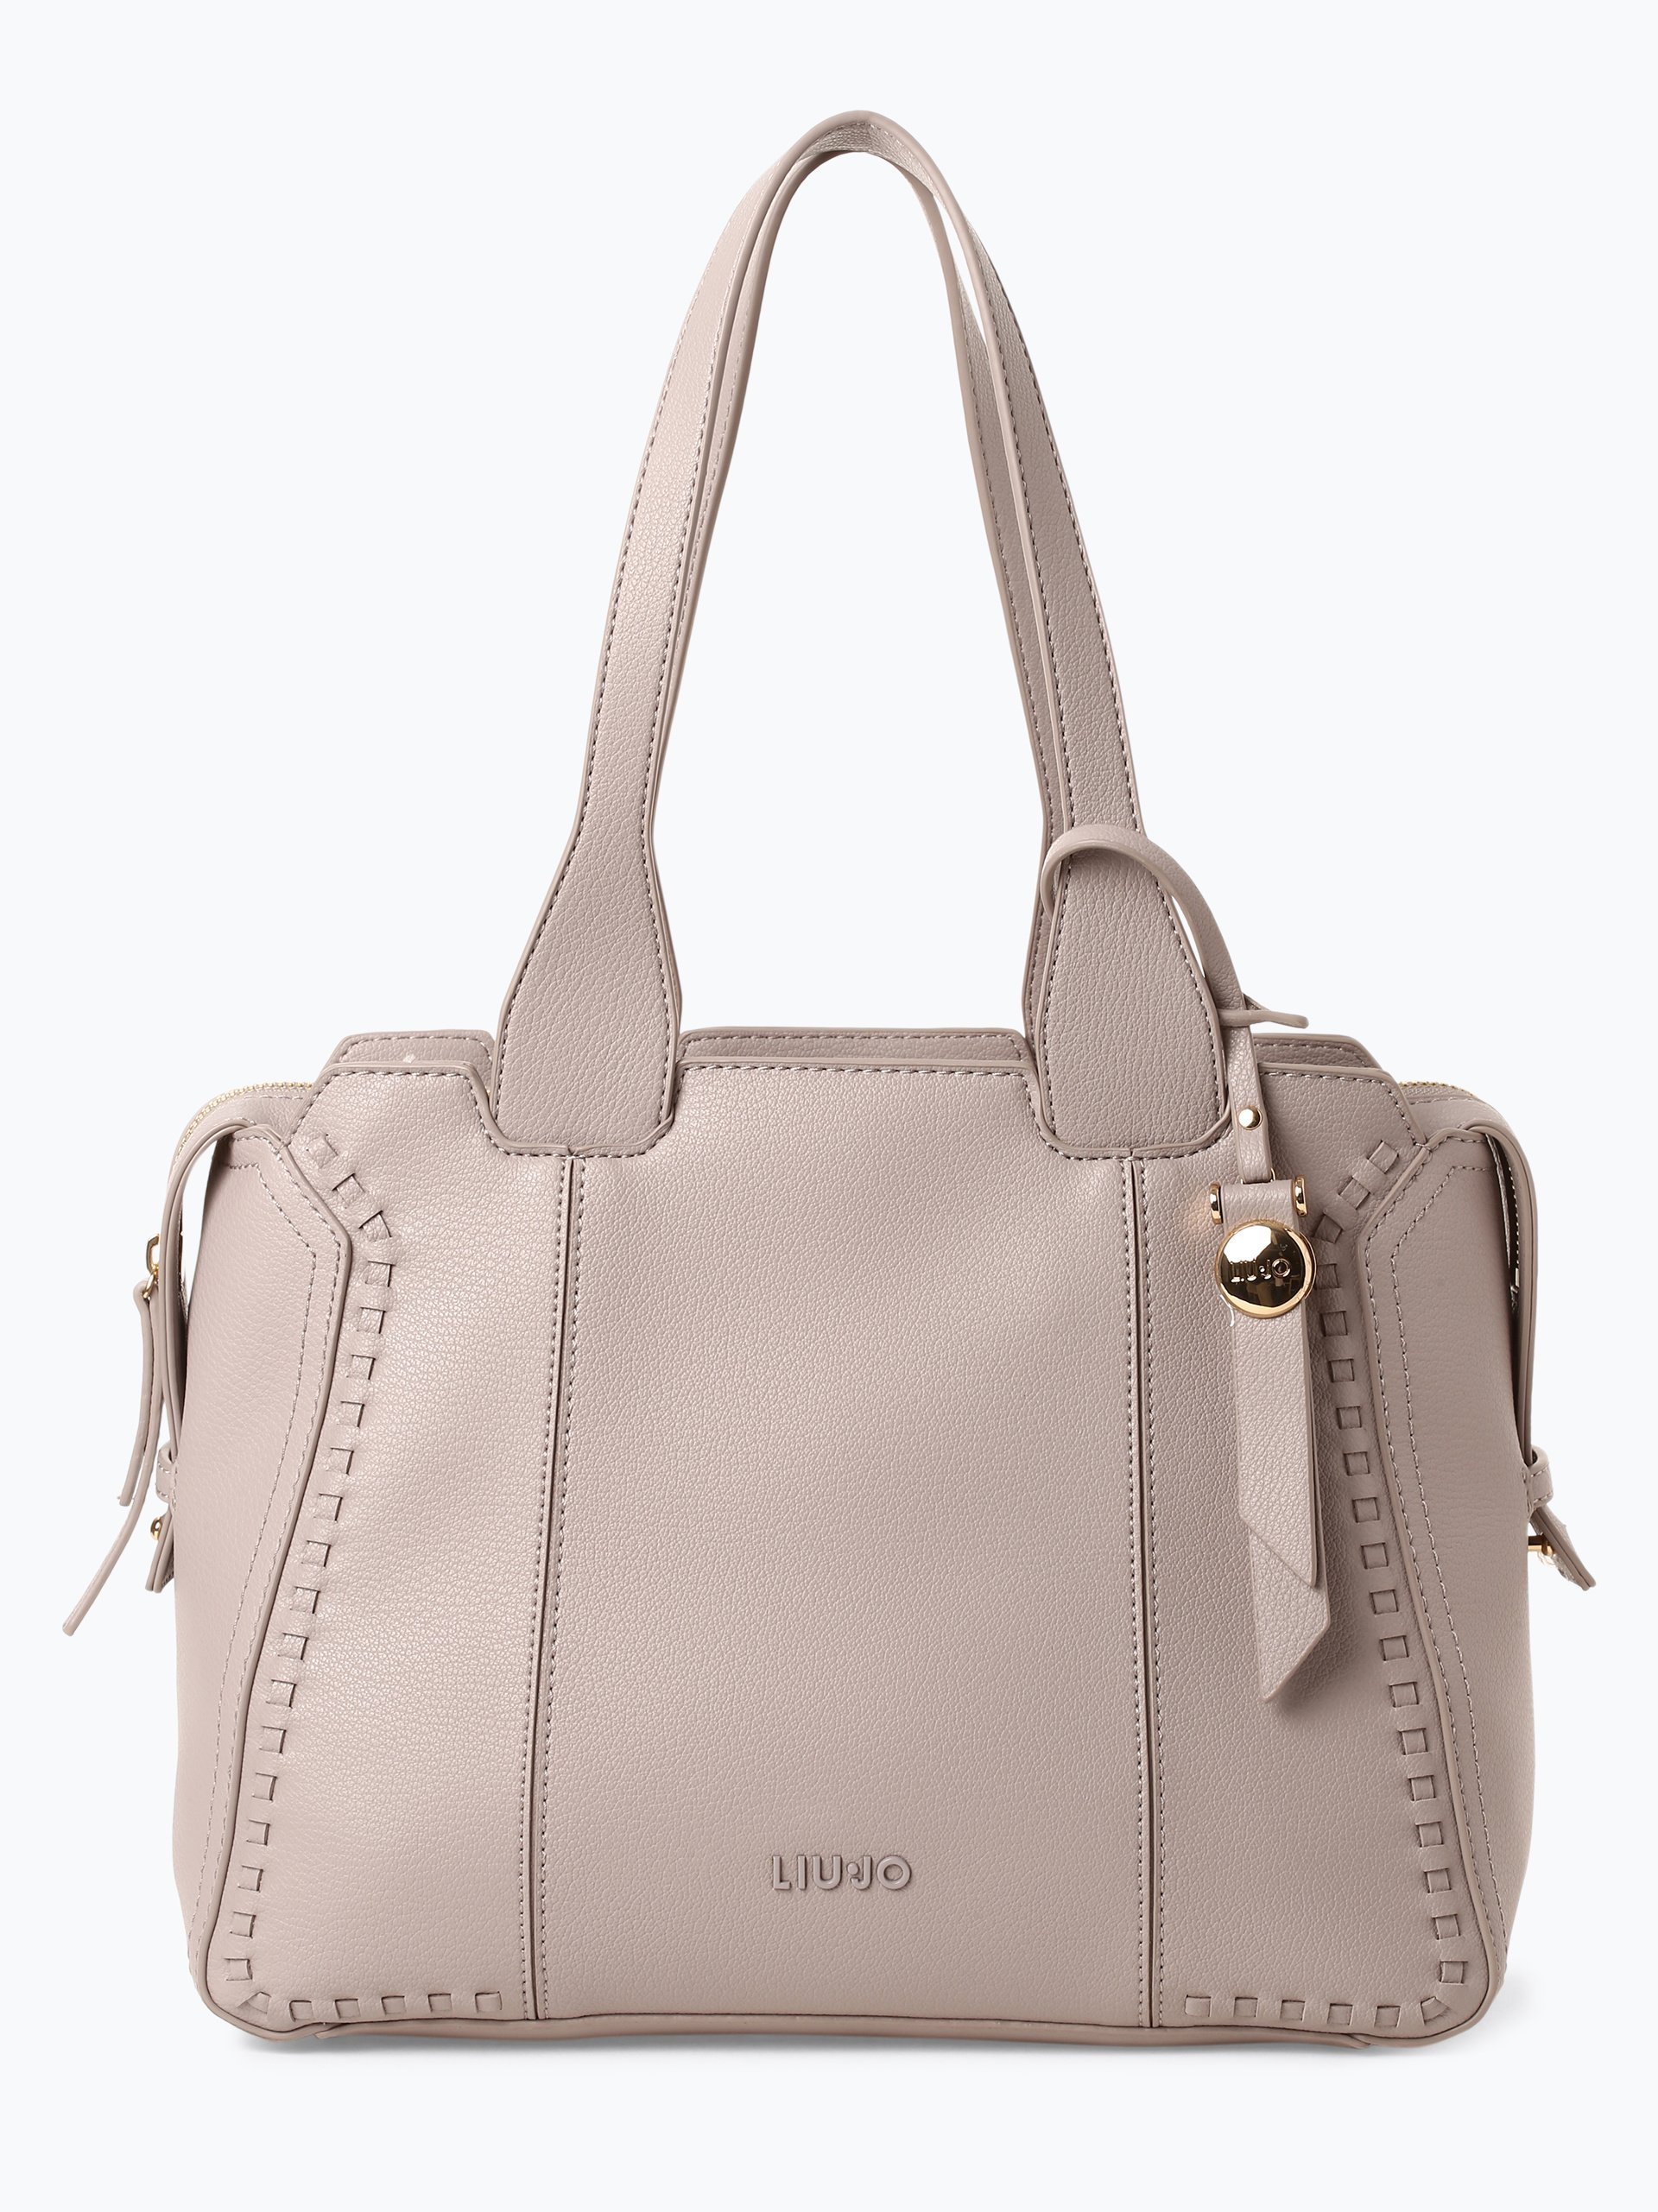 Liu Jo Collection Damen Handtasche